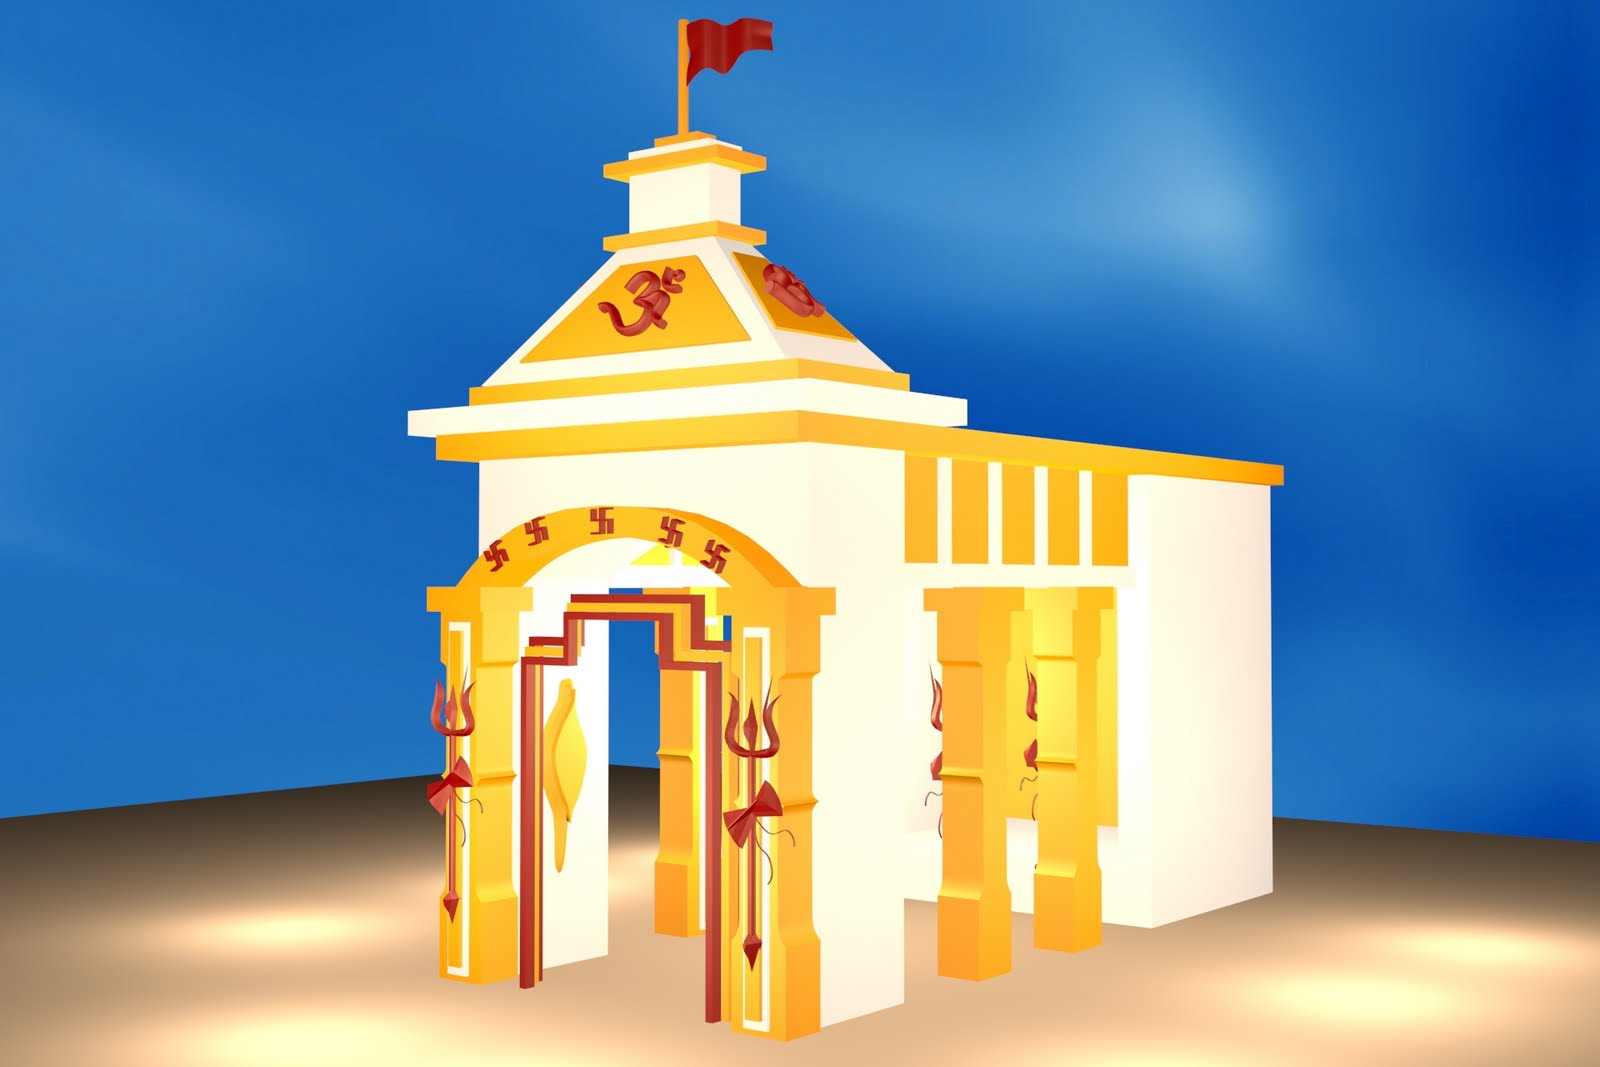 My works durga puja a simple pandal durga puja a simple pandal altavistaventures Choice Image